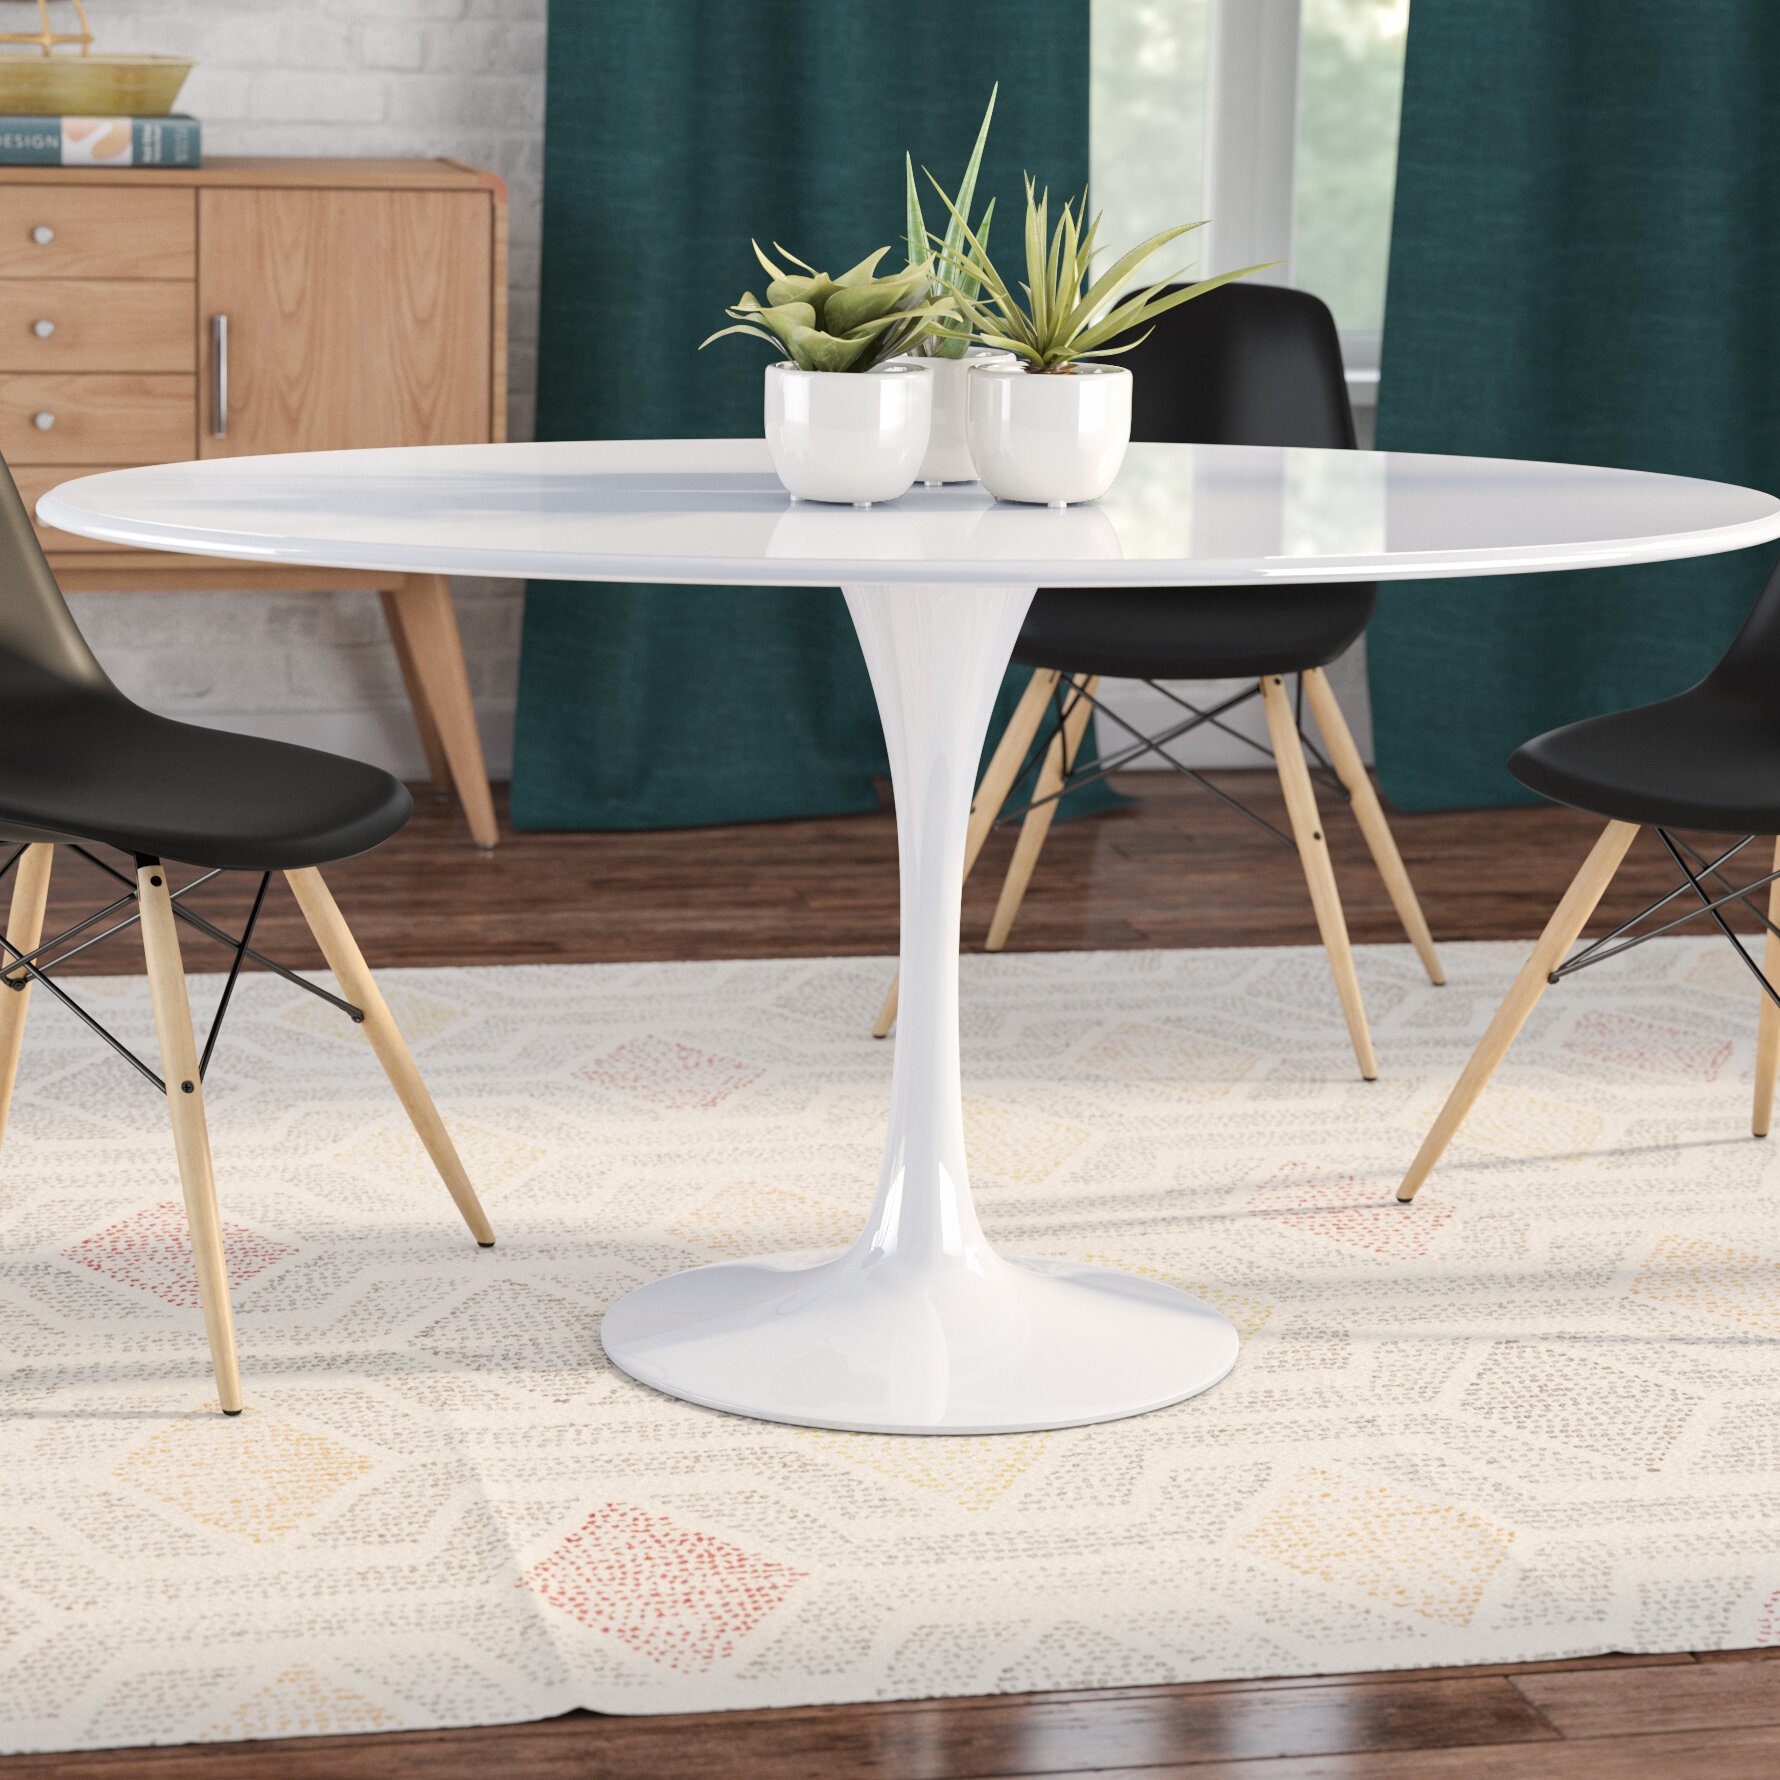 Oval Dining Room Sets | Langley Street Julien Oval Dining Table Reviews Wayfair